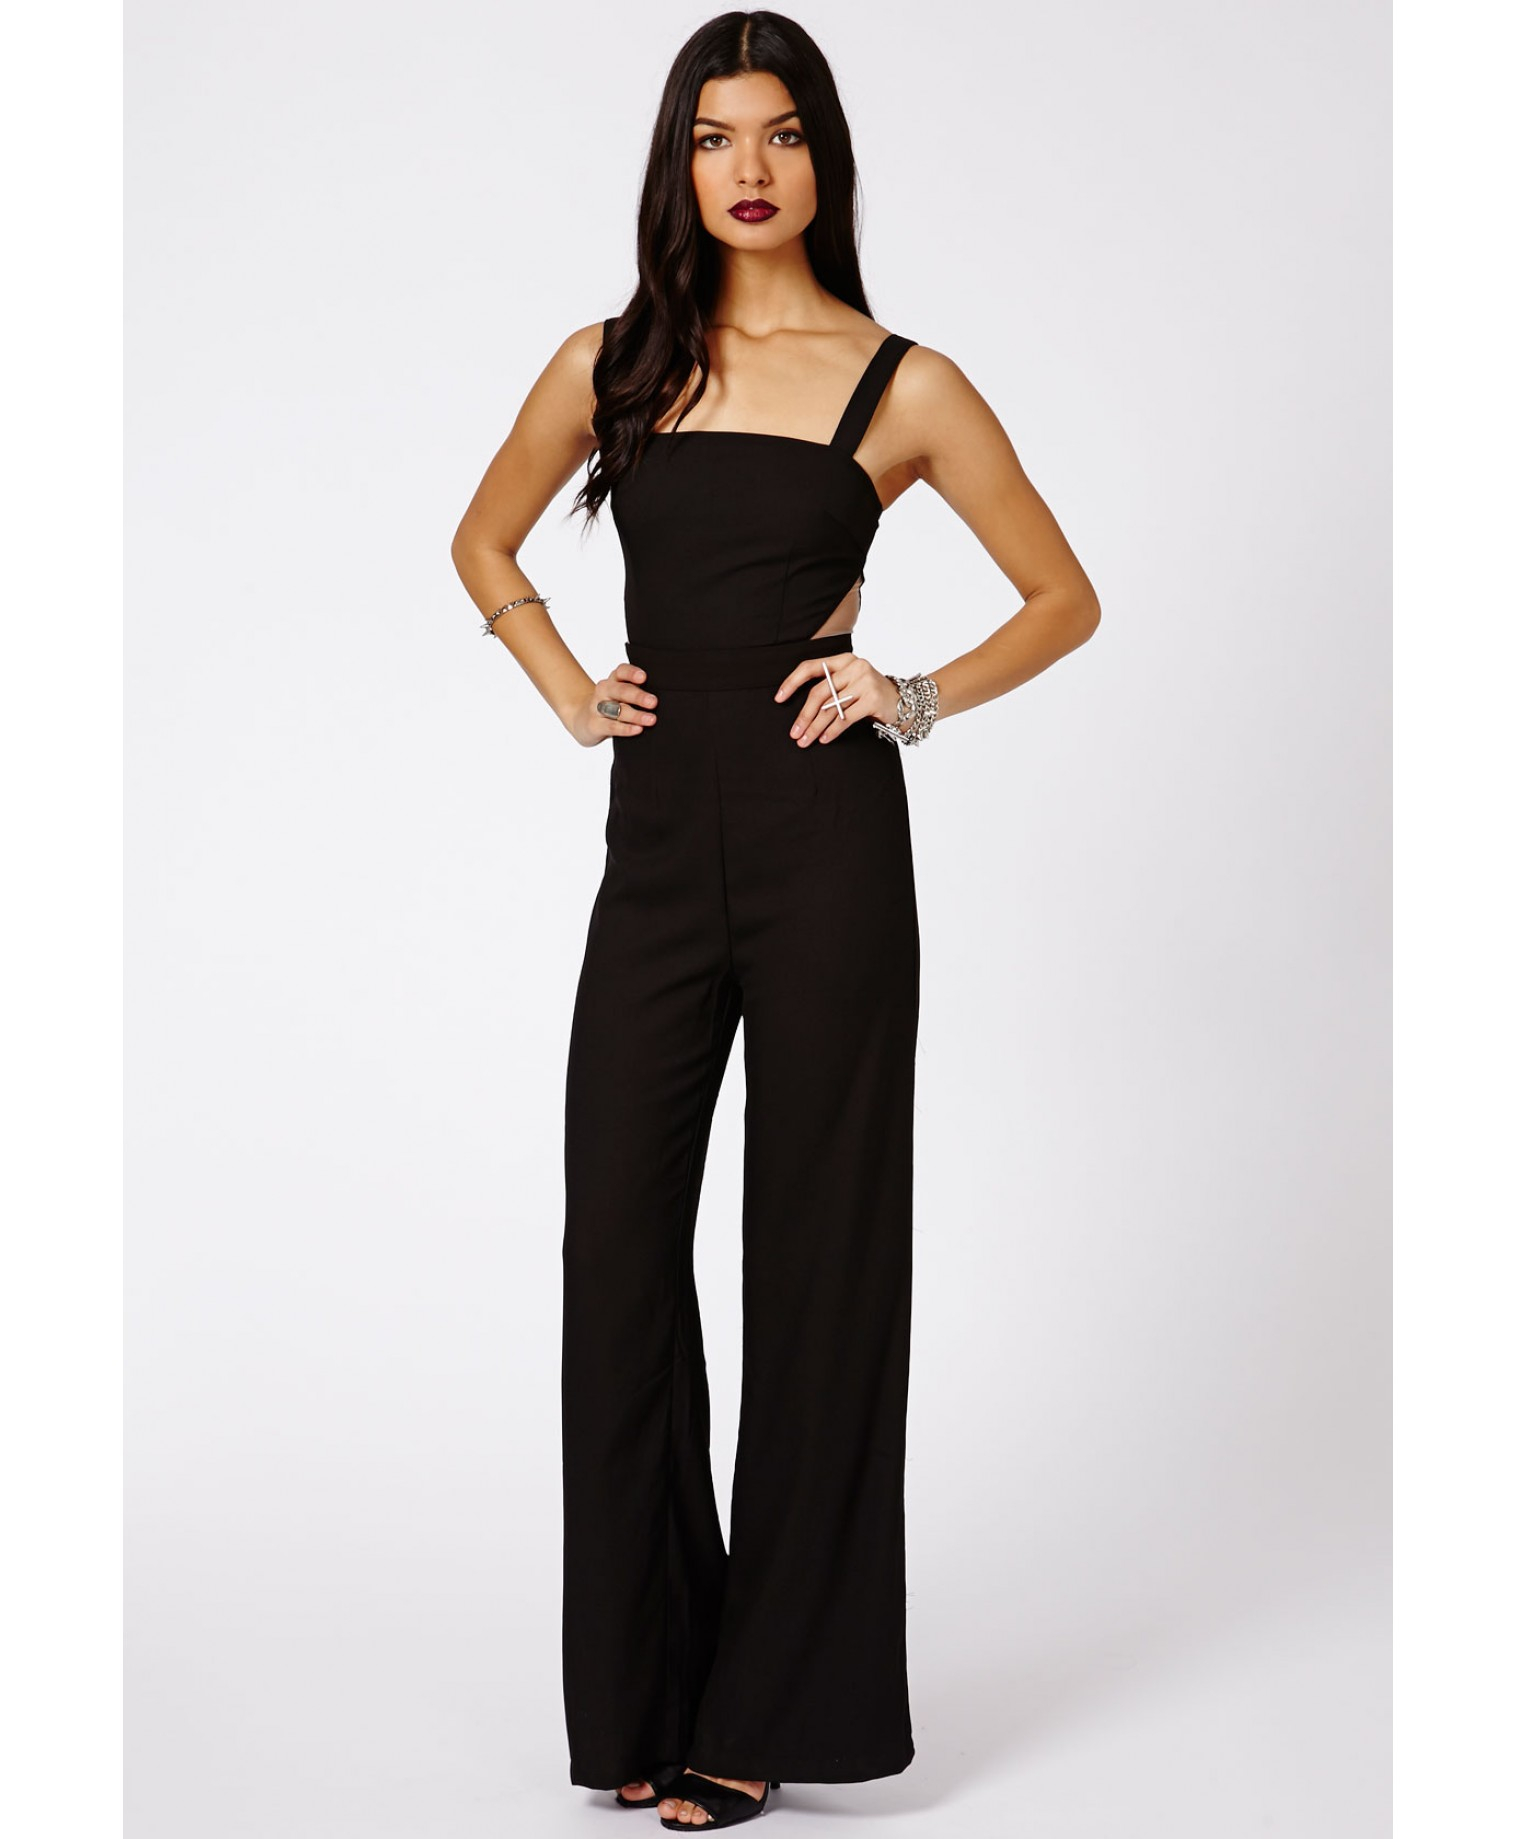 872bcebc072 Lyst - Missguided Vovera Mesh Cut Out Detail Jumpsuit in Black